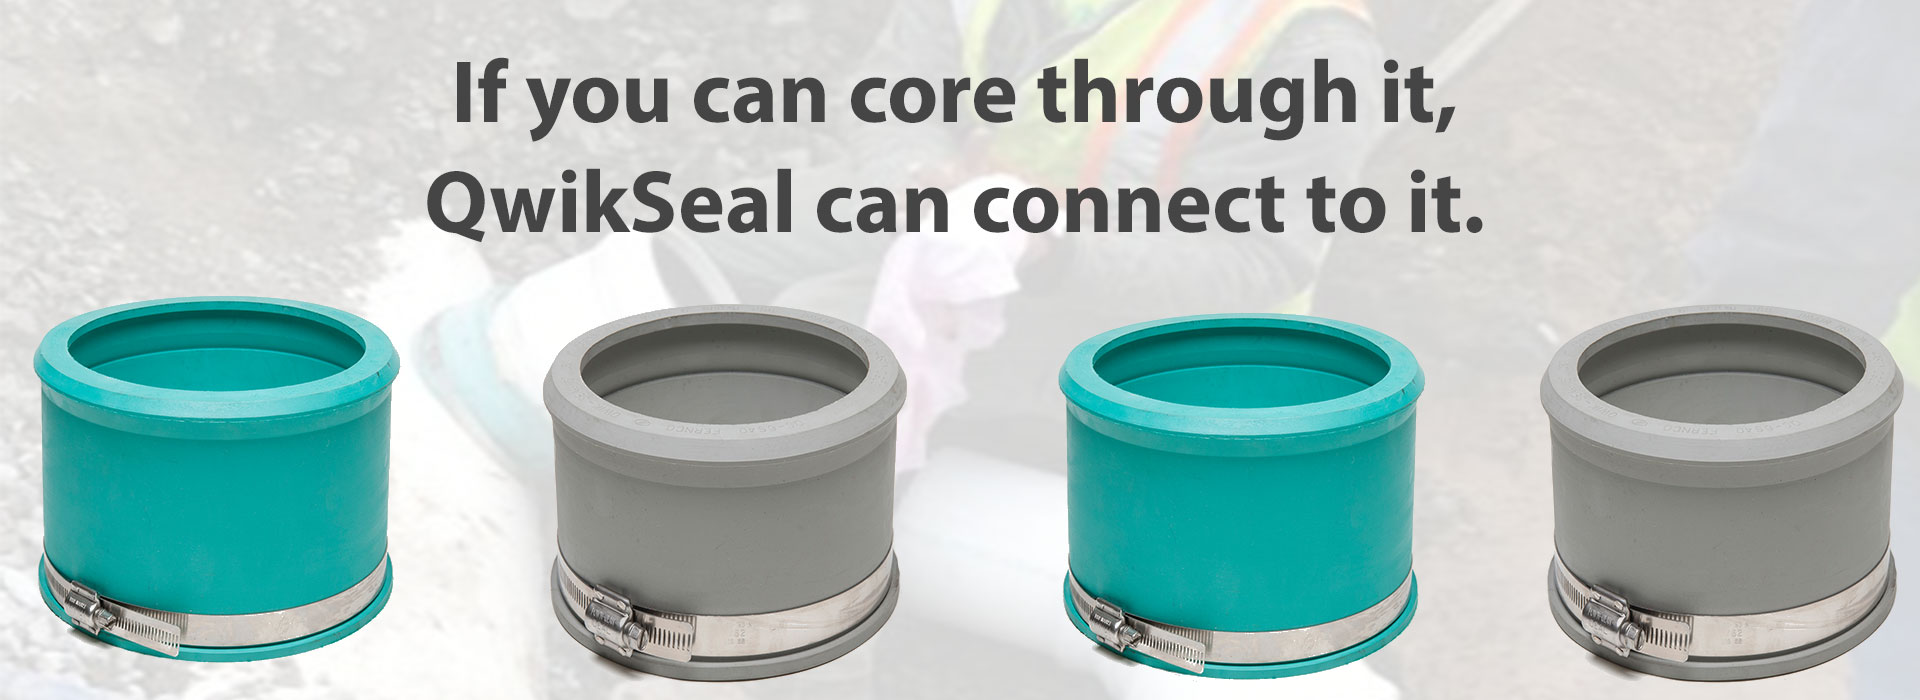 If you can core through it, QwikSeal can connect to it.